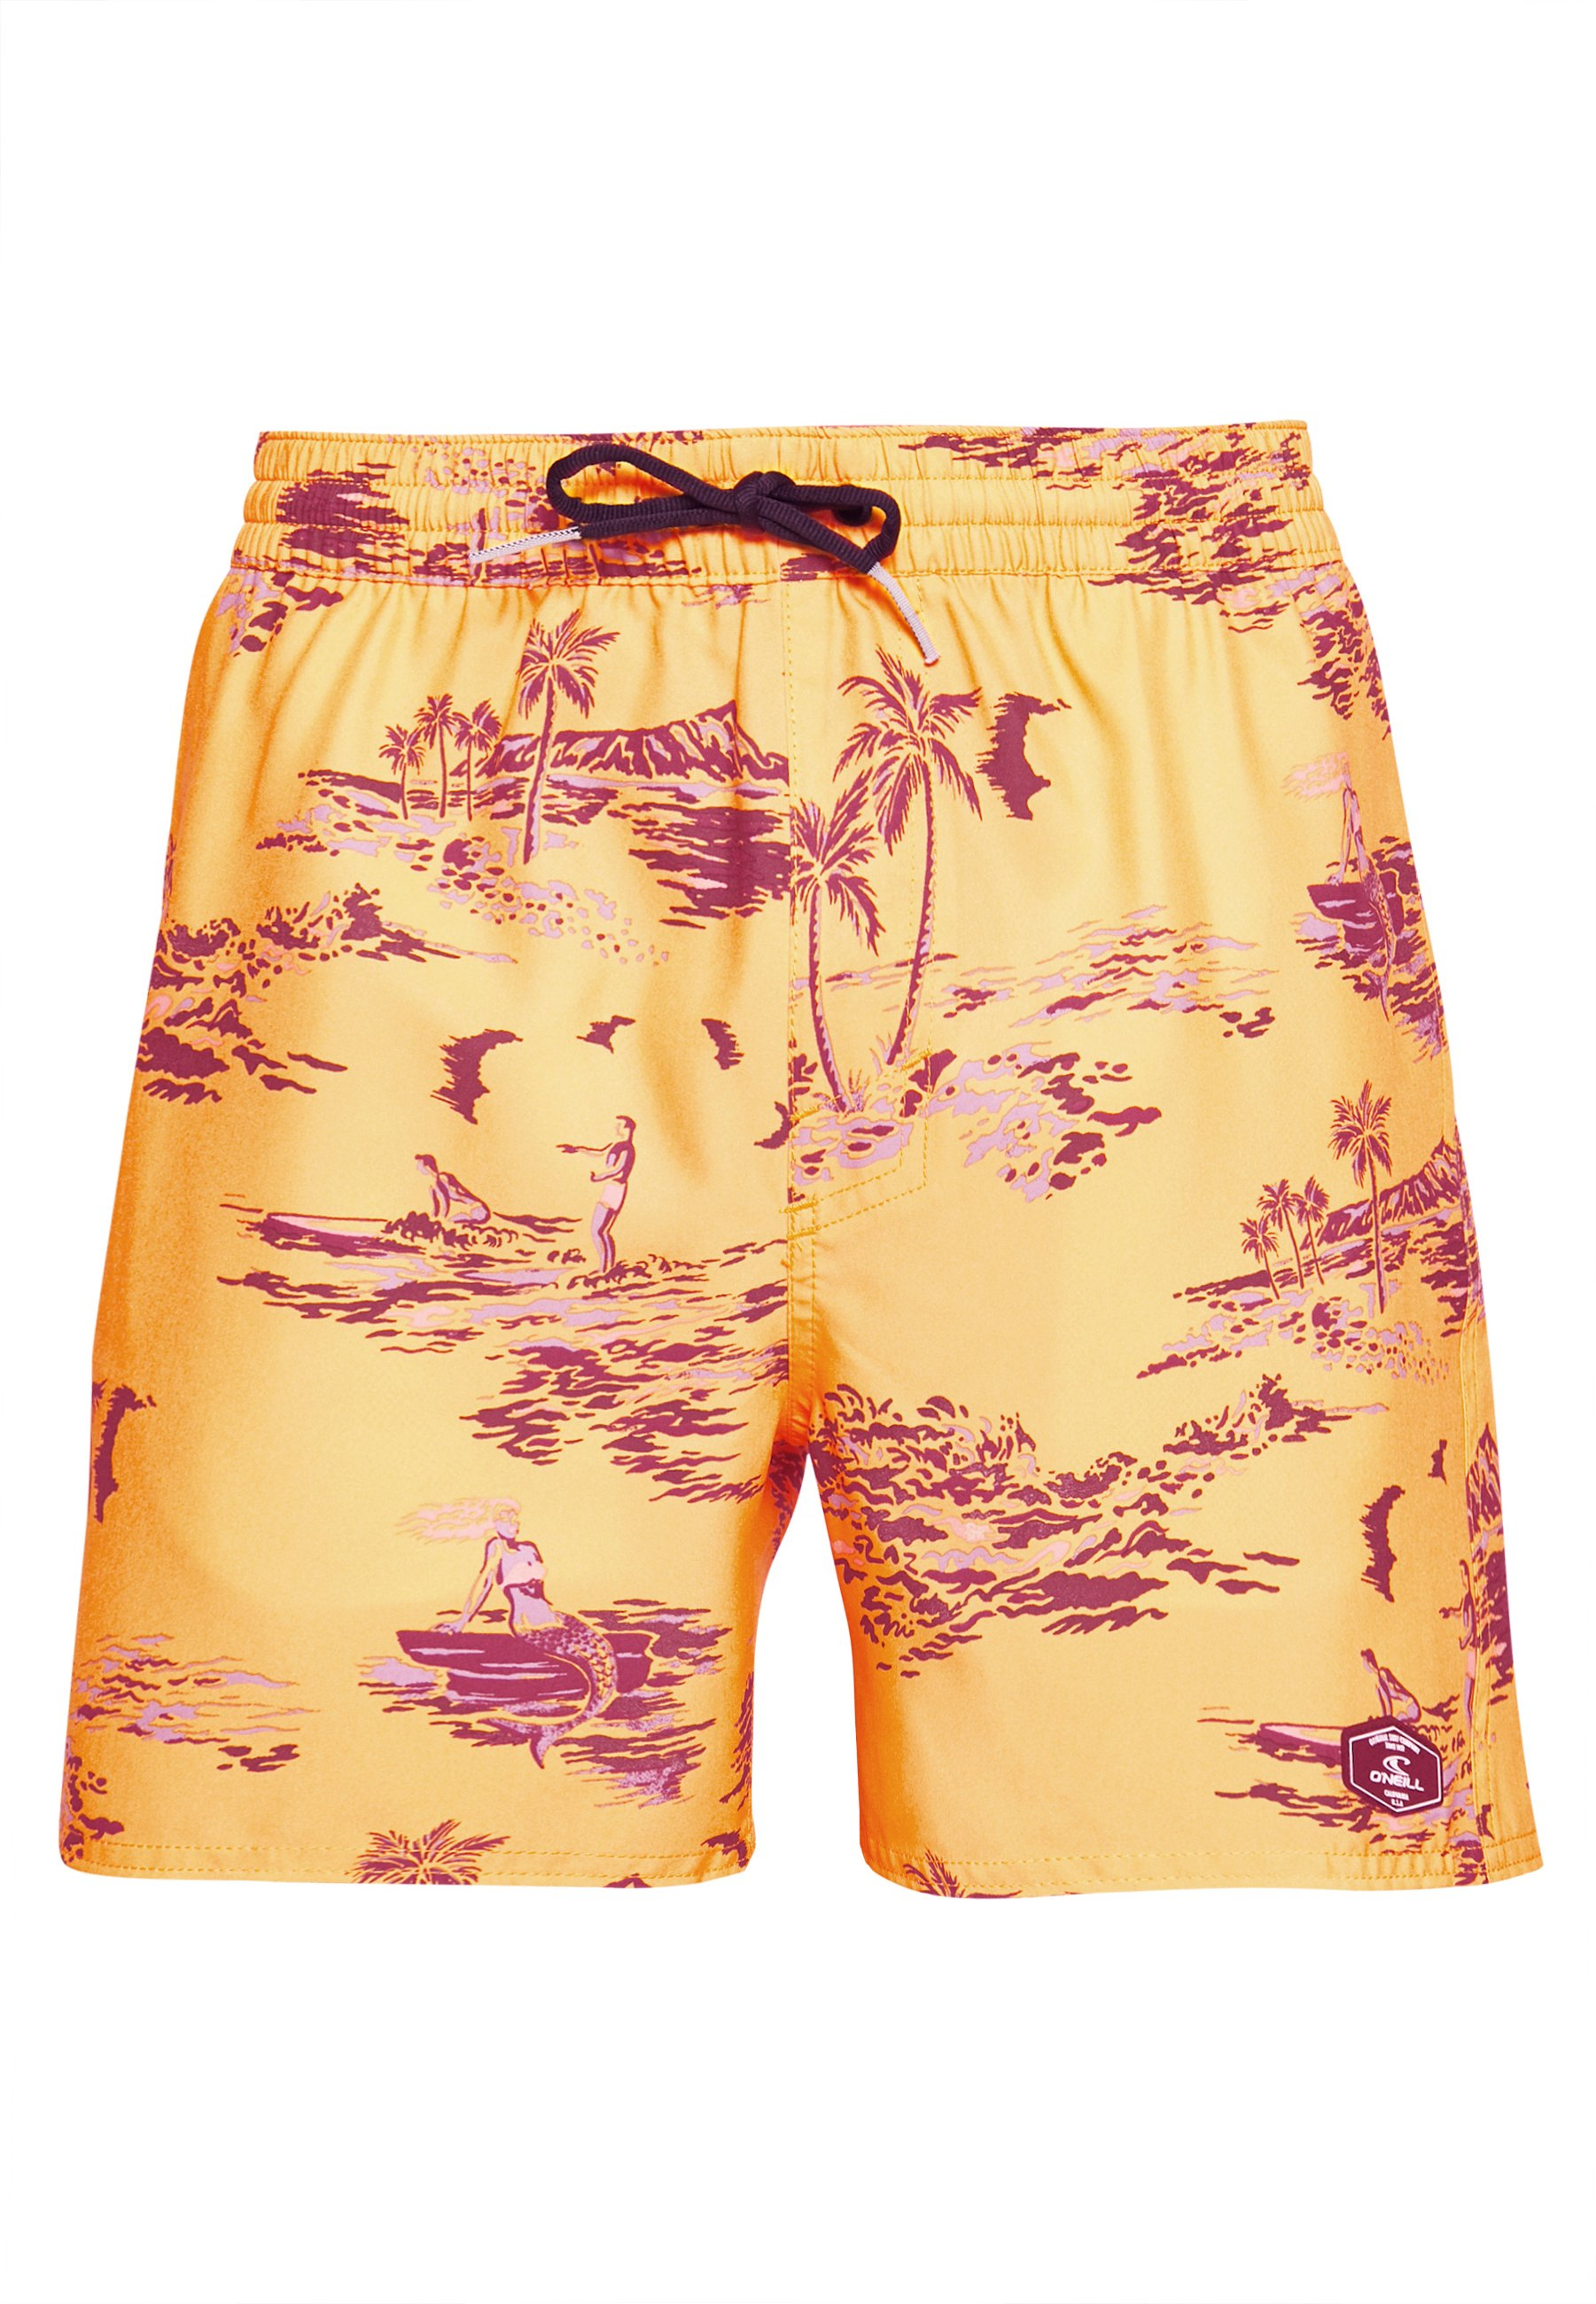 O'neill Tropical - Shorts Da Mare Yellow/brown zbiMcFB